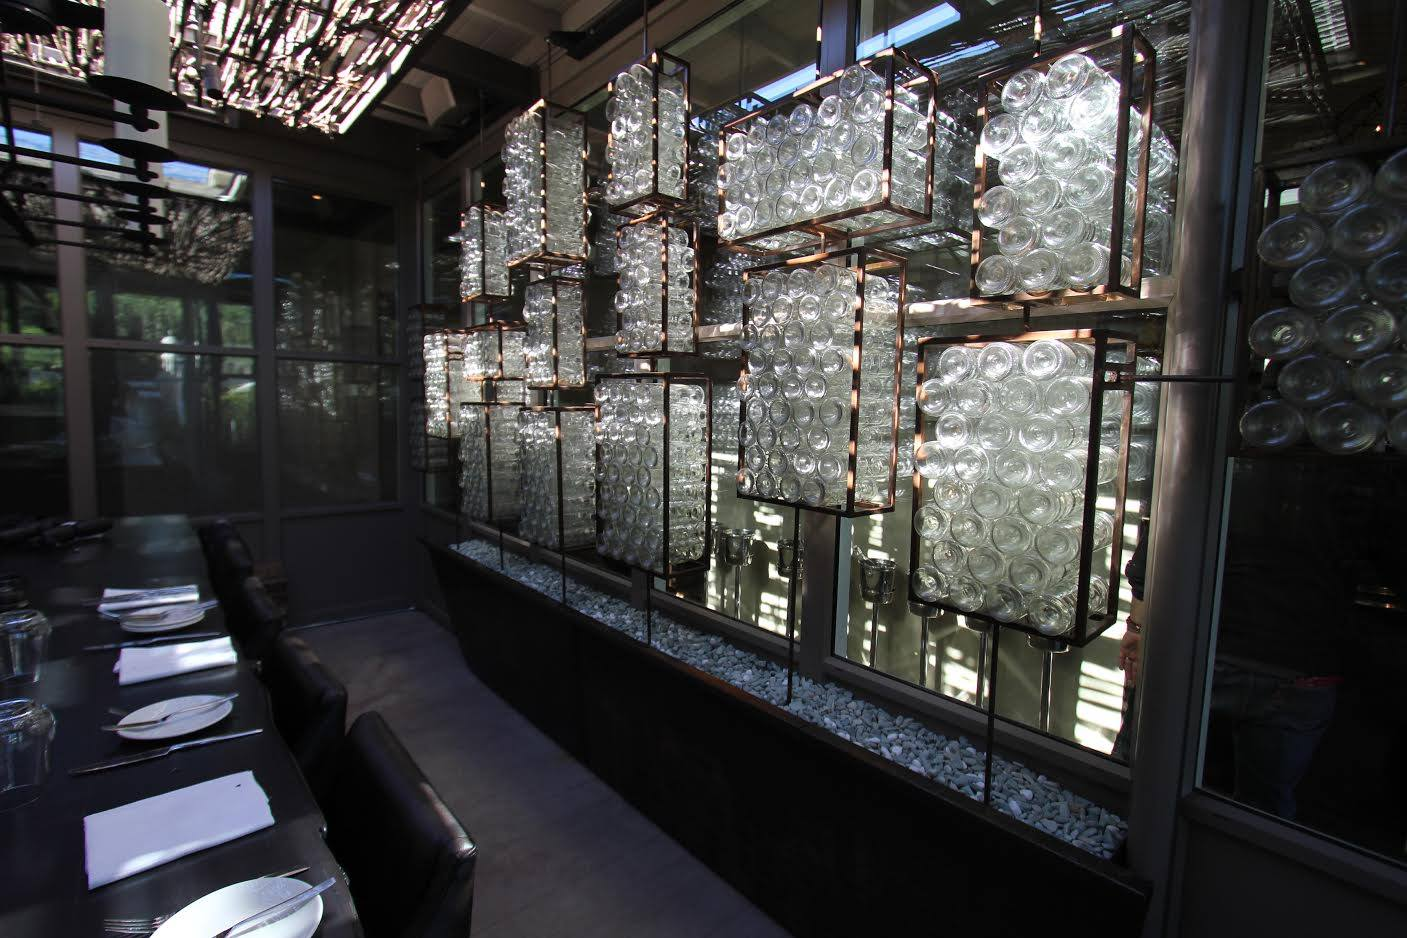 Custom glass and metal wall installation created for a restaurant/wine bar in Napa. We fabricated and assembled the glass components in this site specific piece.